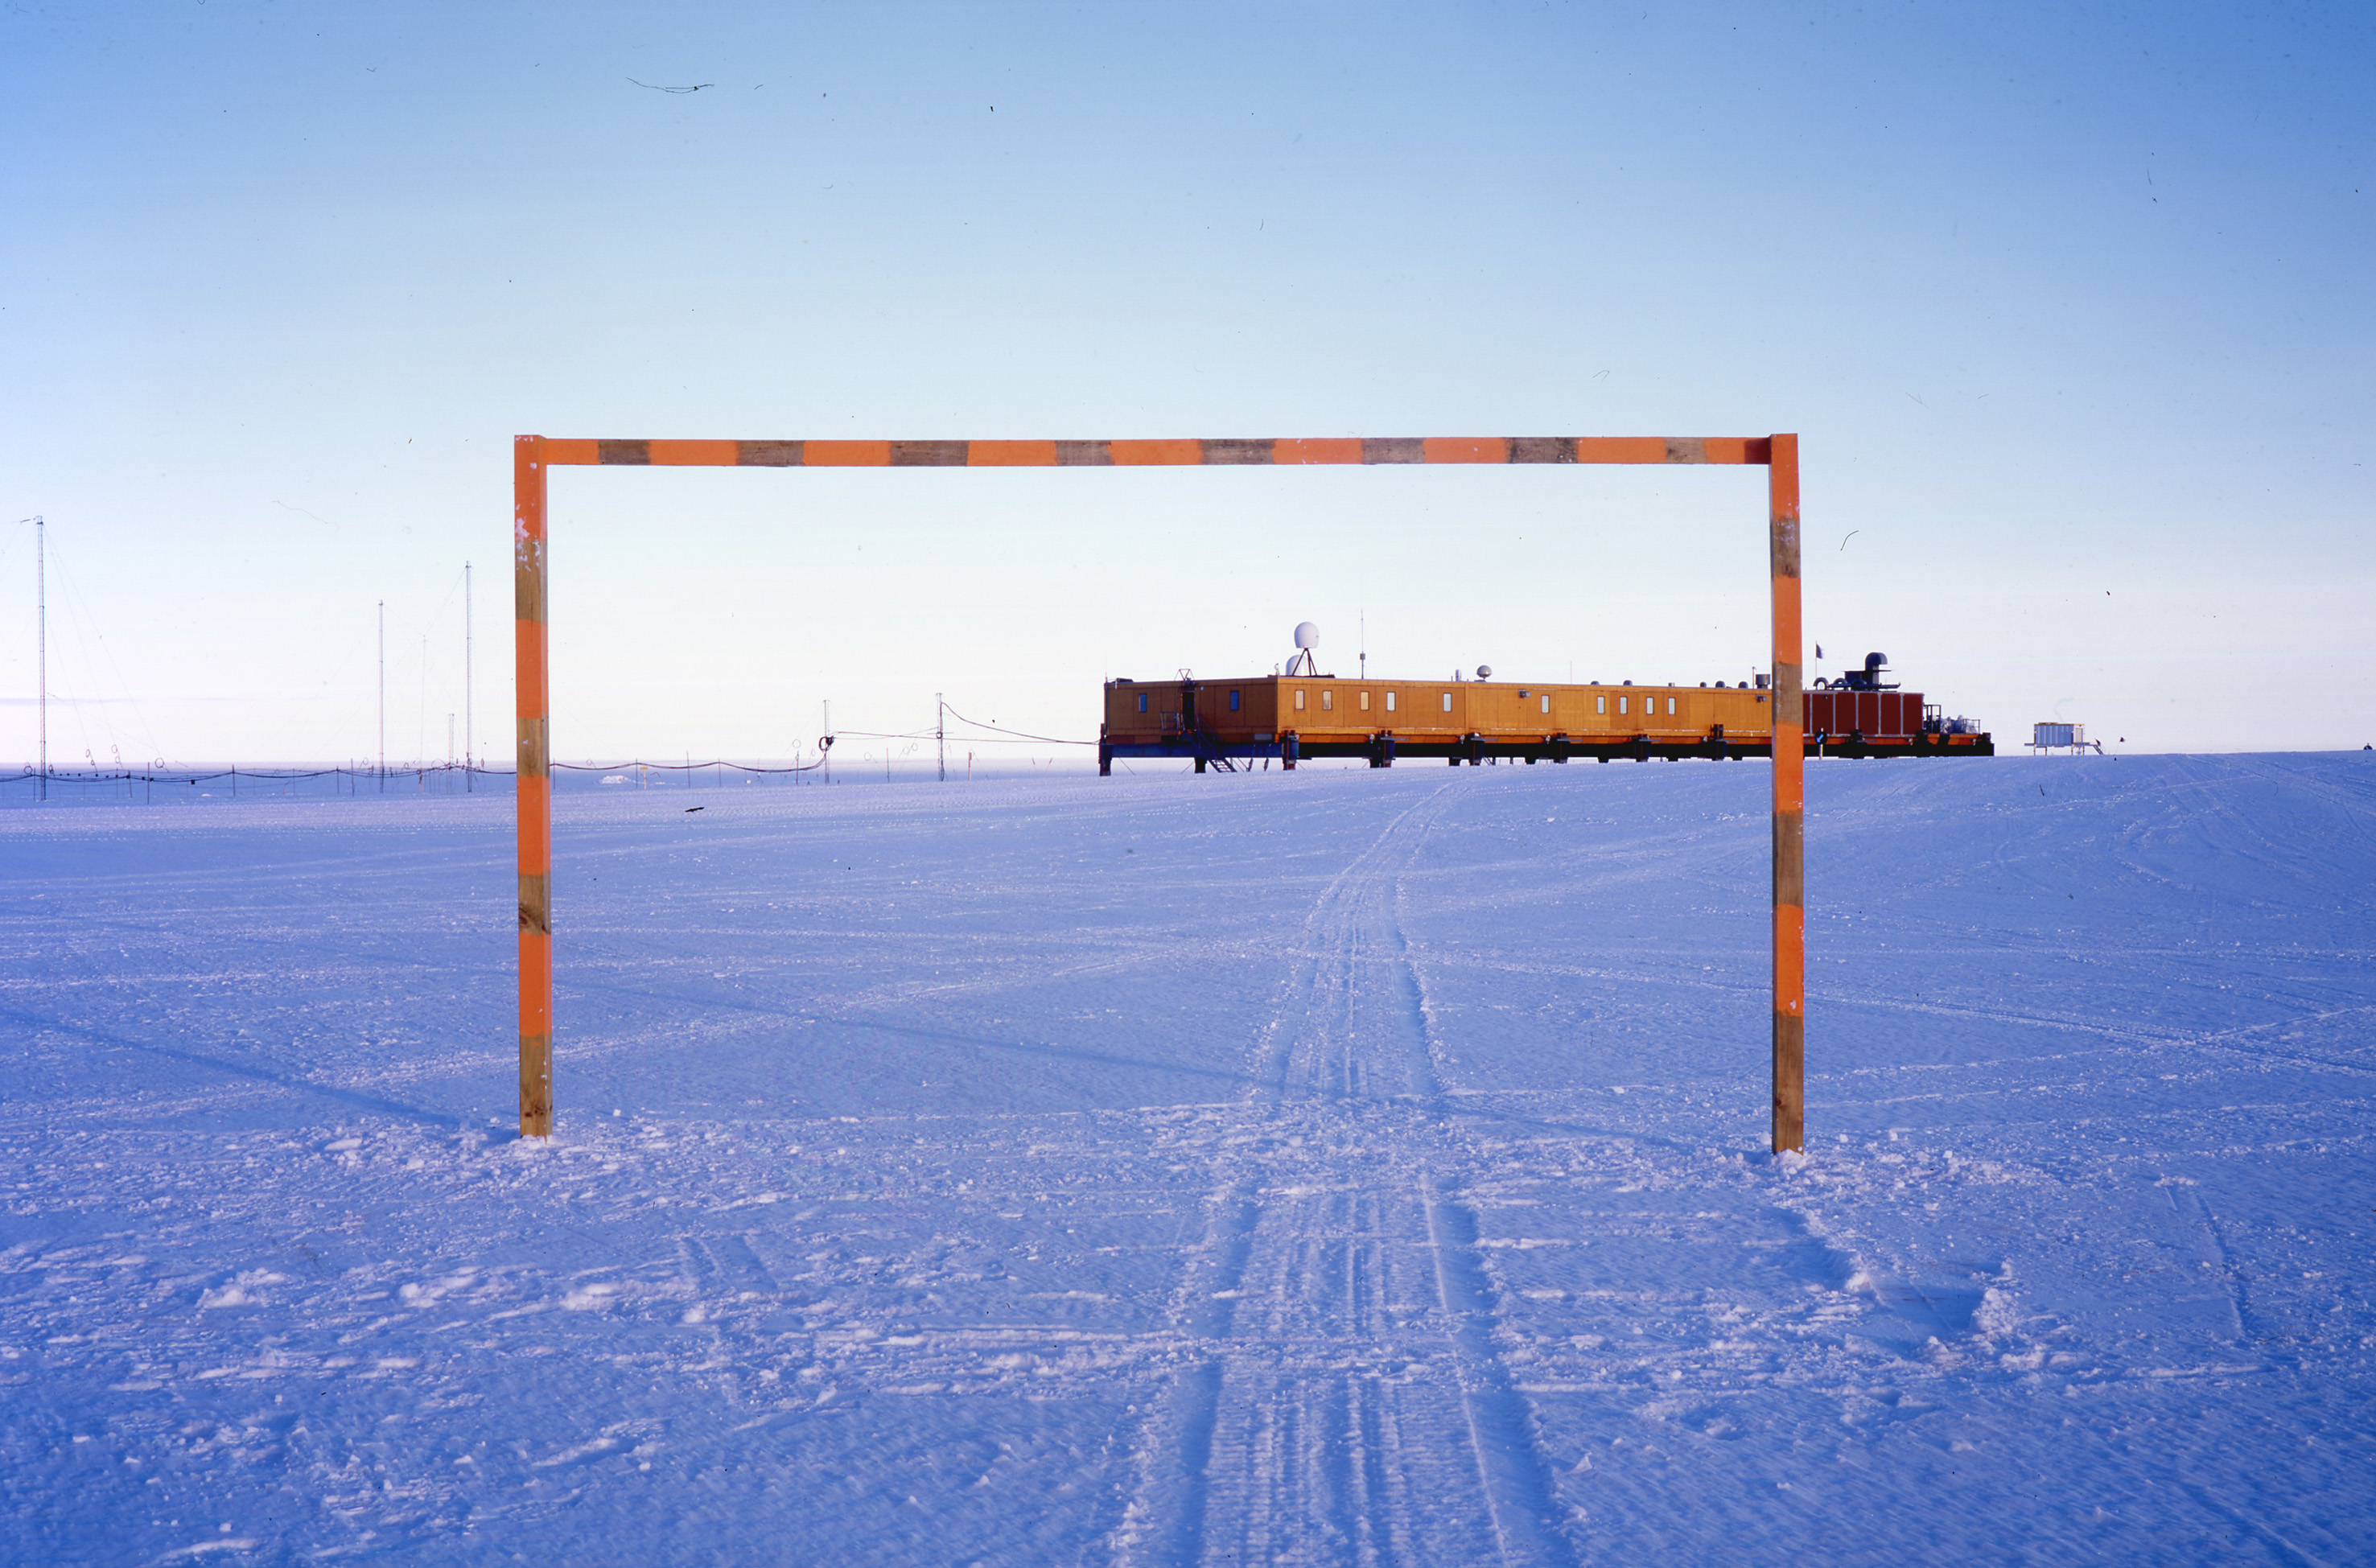 Halley Research Centre, Antarctica